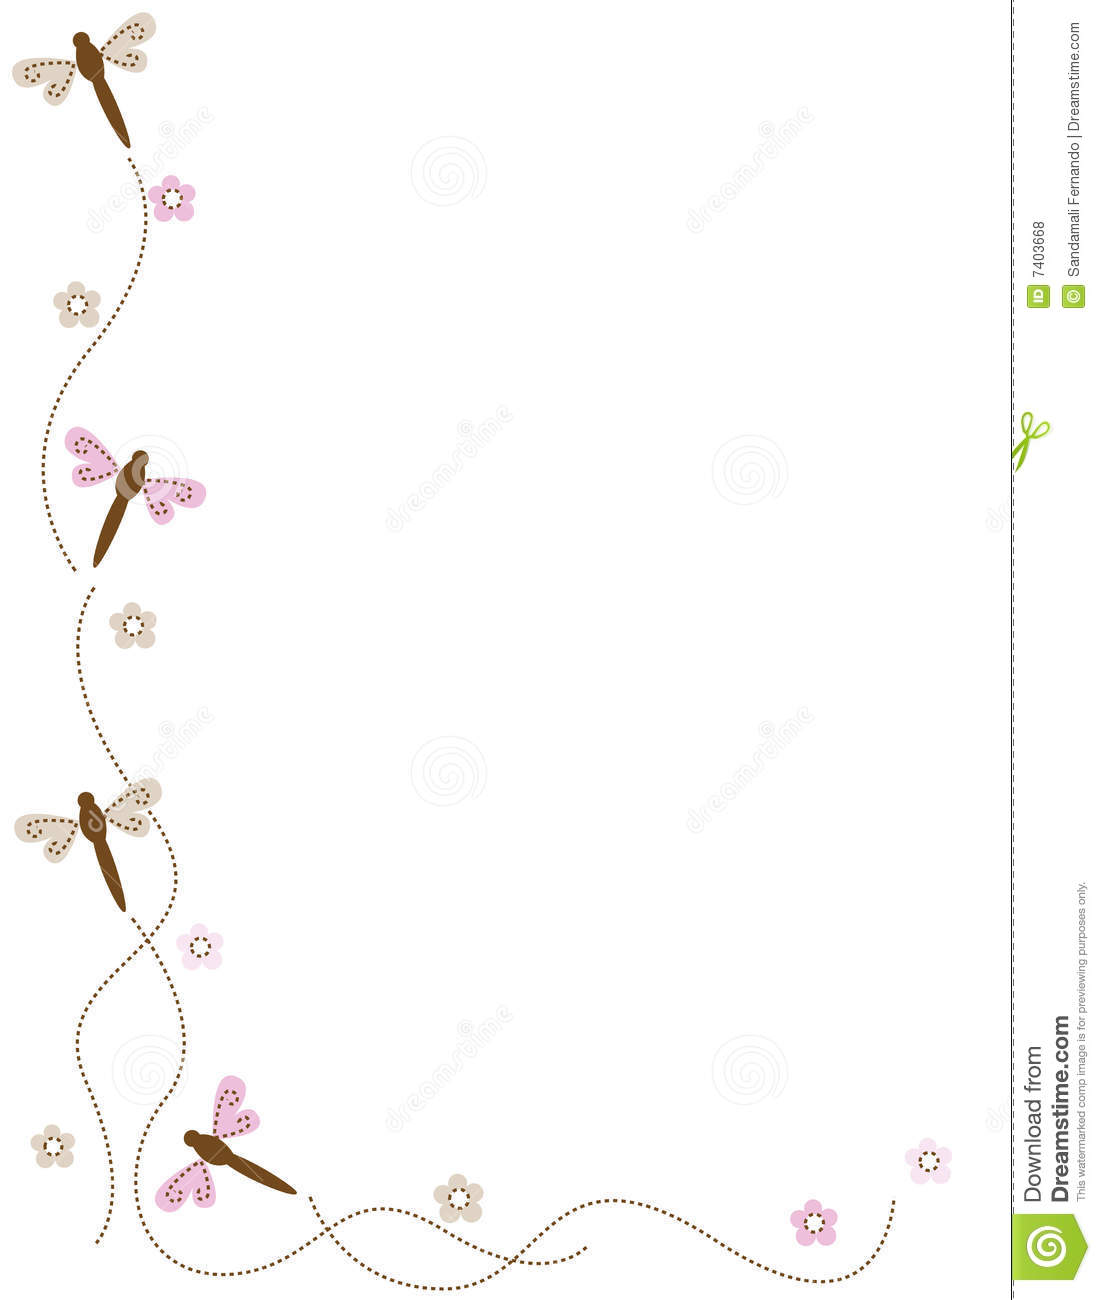 dragonfly corner royalty free stock photos image 7403668